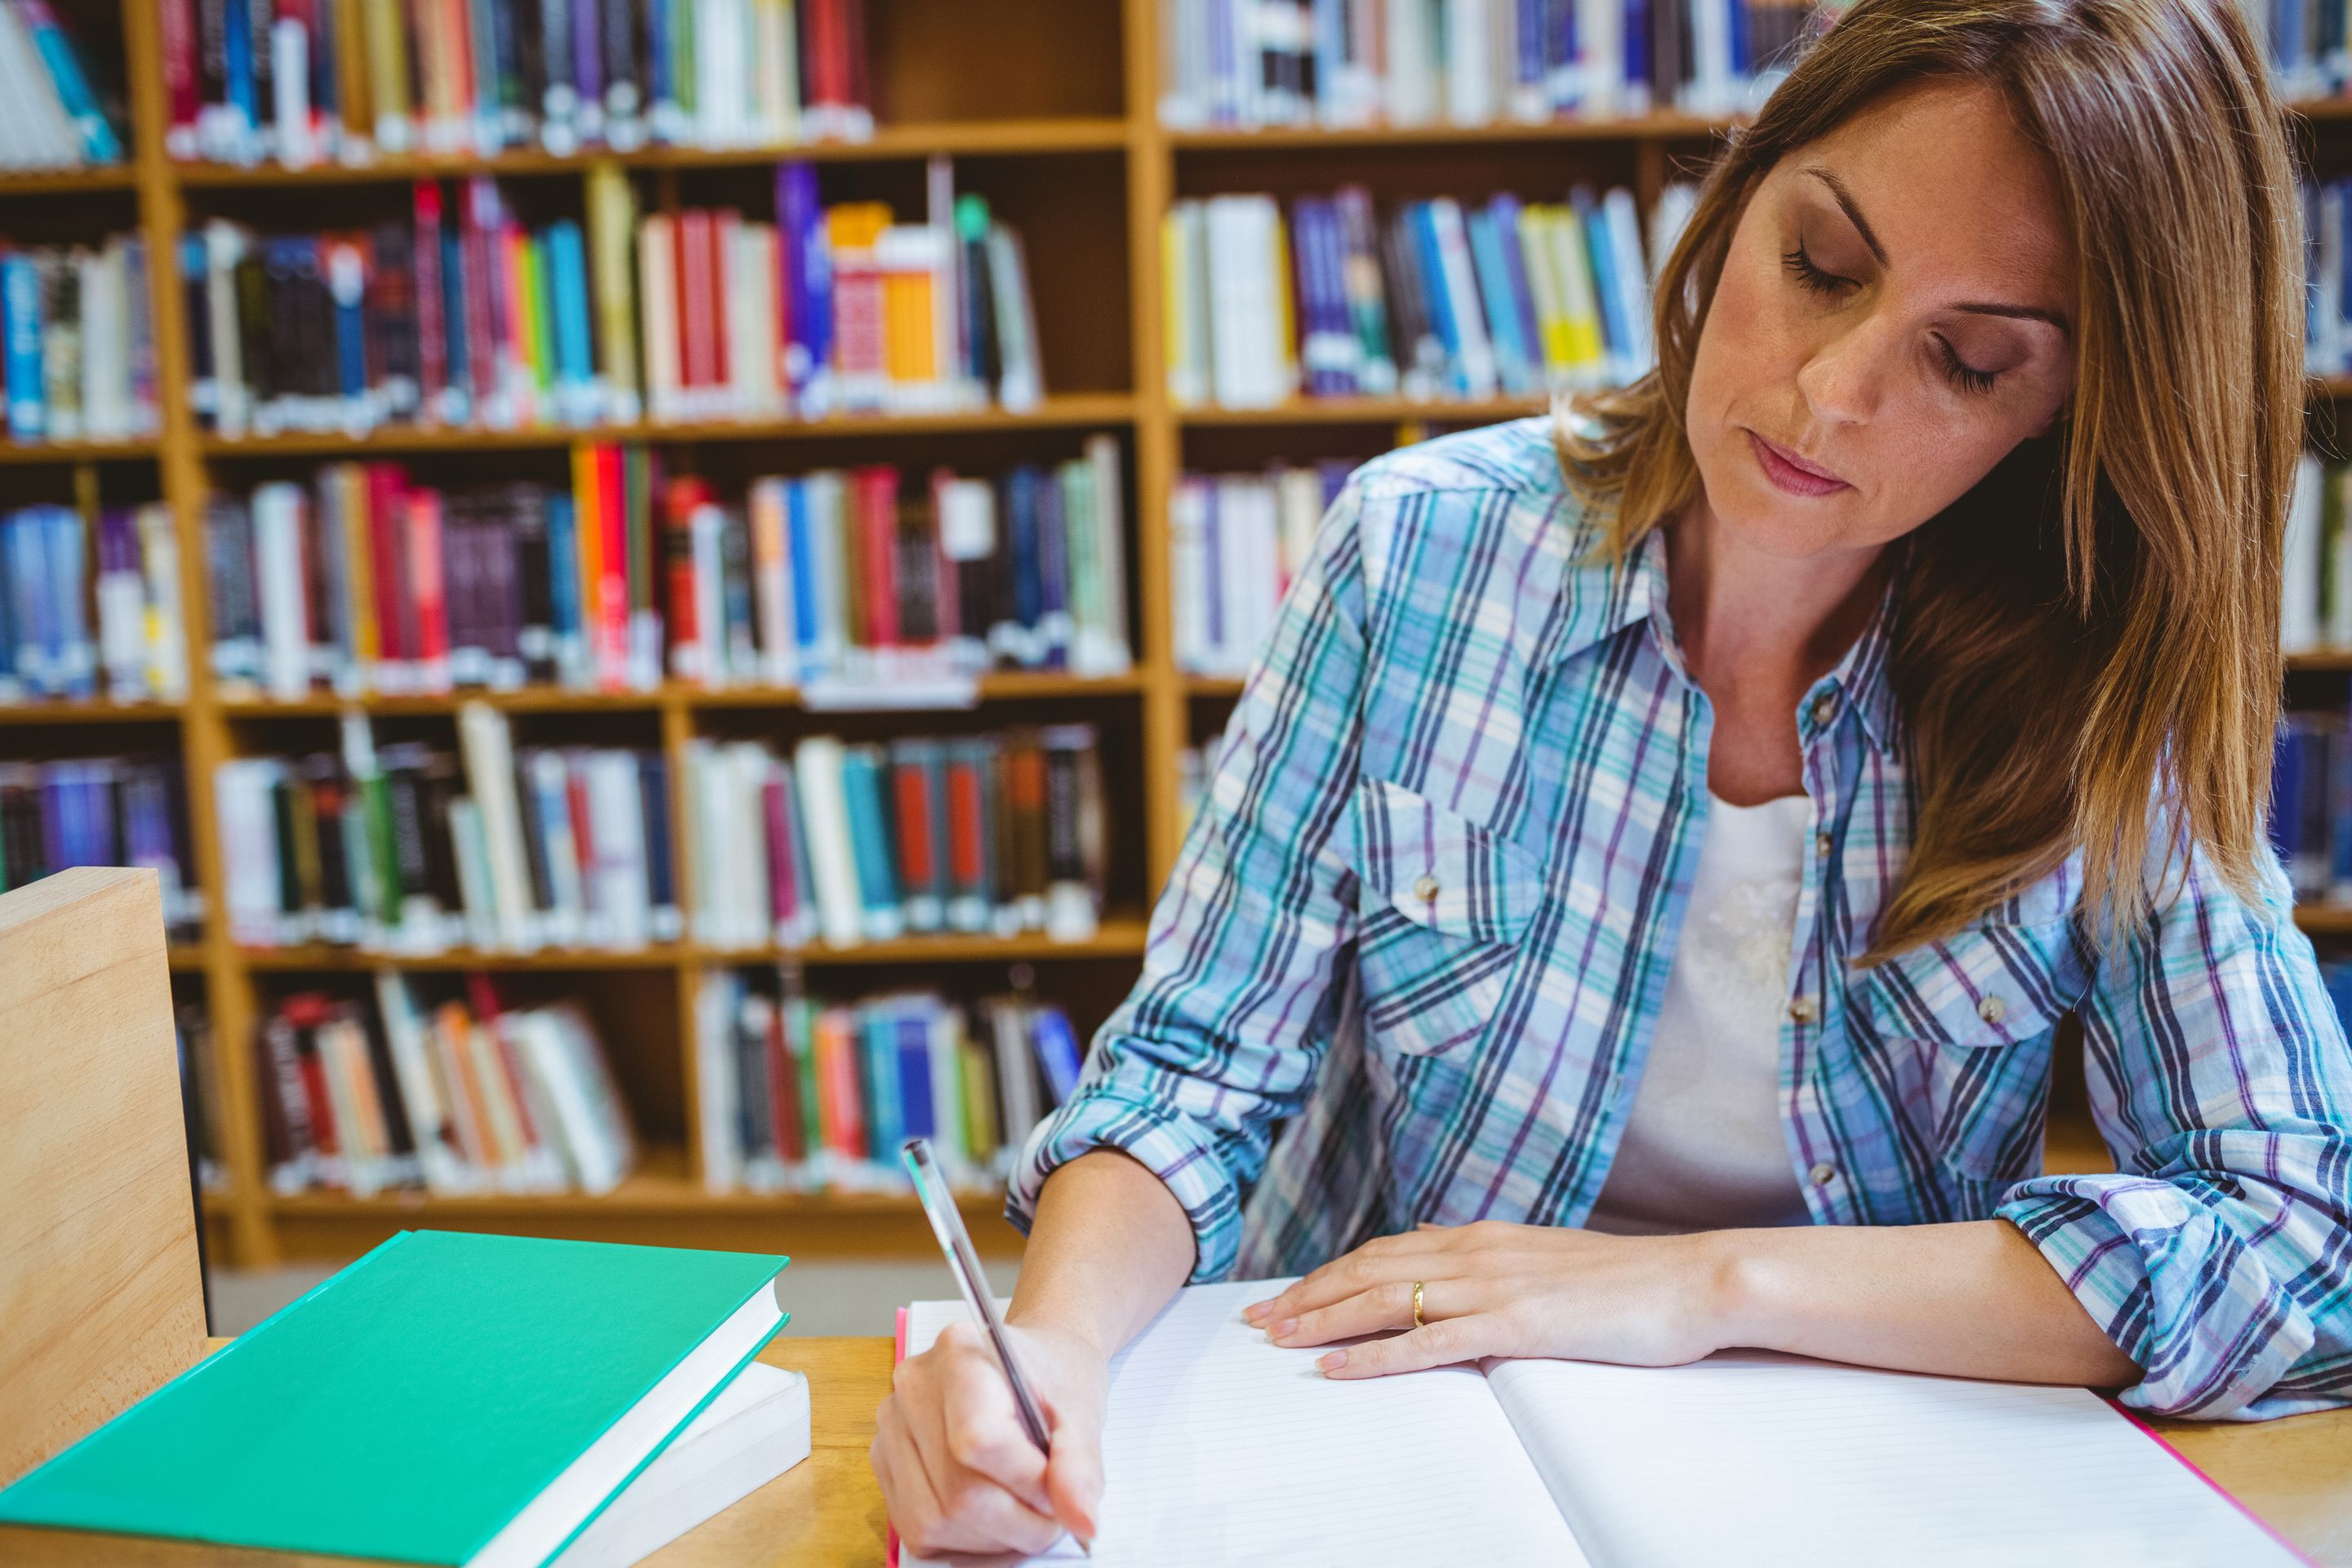 A teacher sitting in the library, writing her thoughts down in a journal